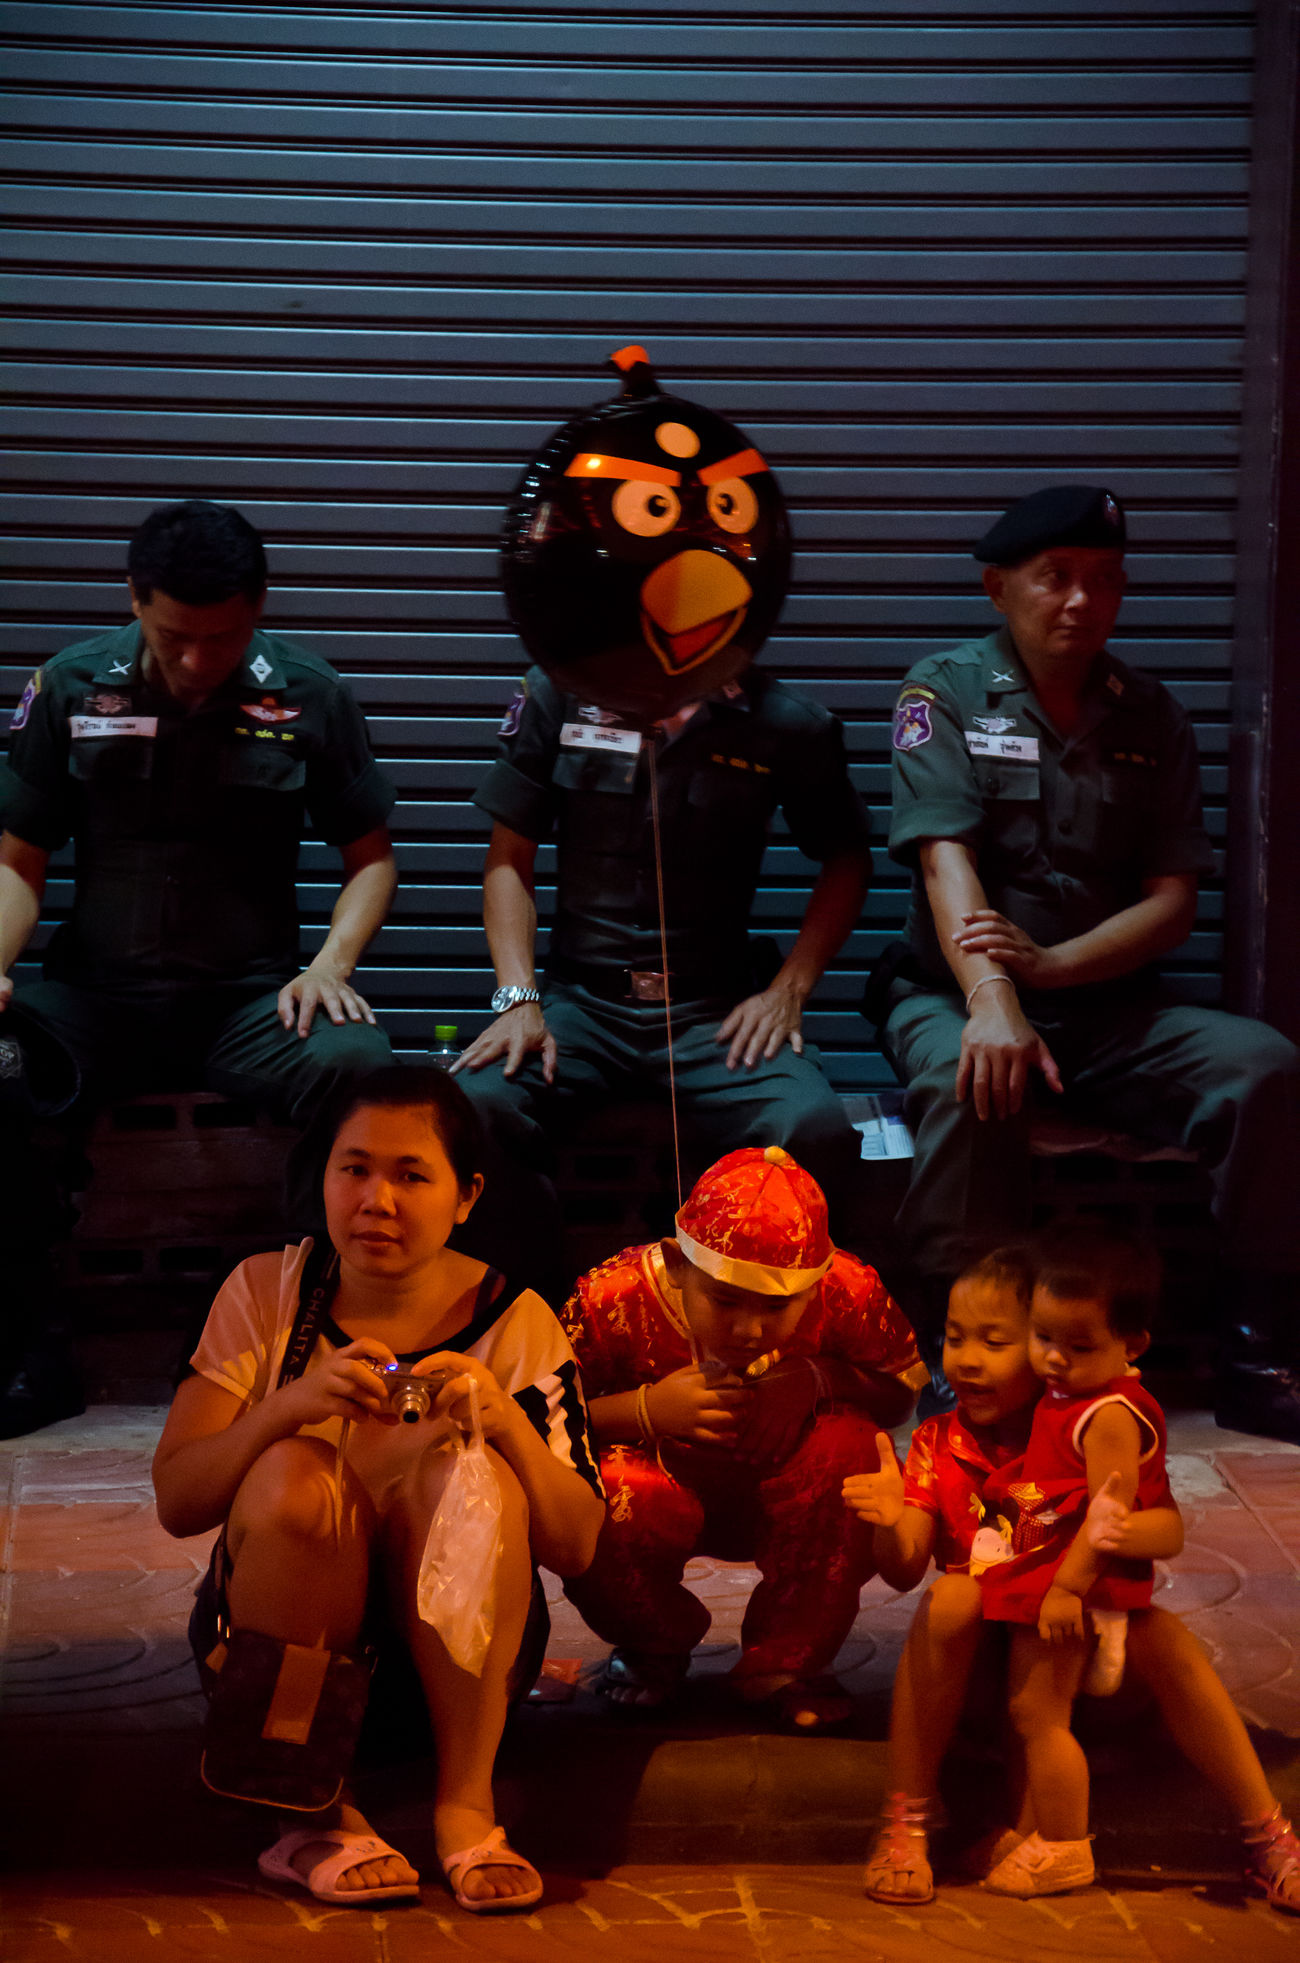 Angry Birds Angrybirds Children Family Life My Year My View People Street Streetphotography Thaïlande